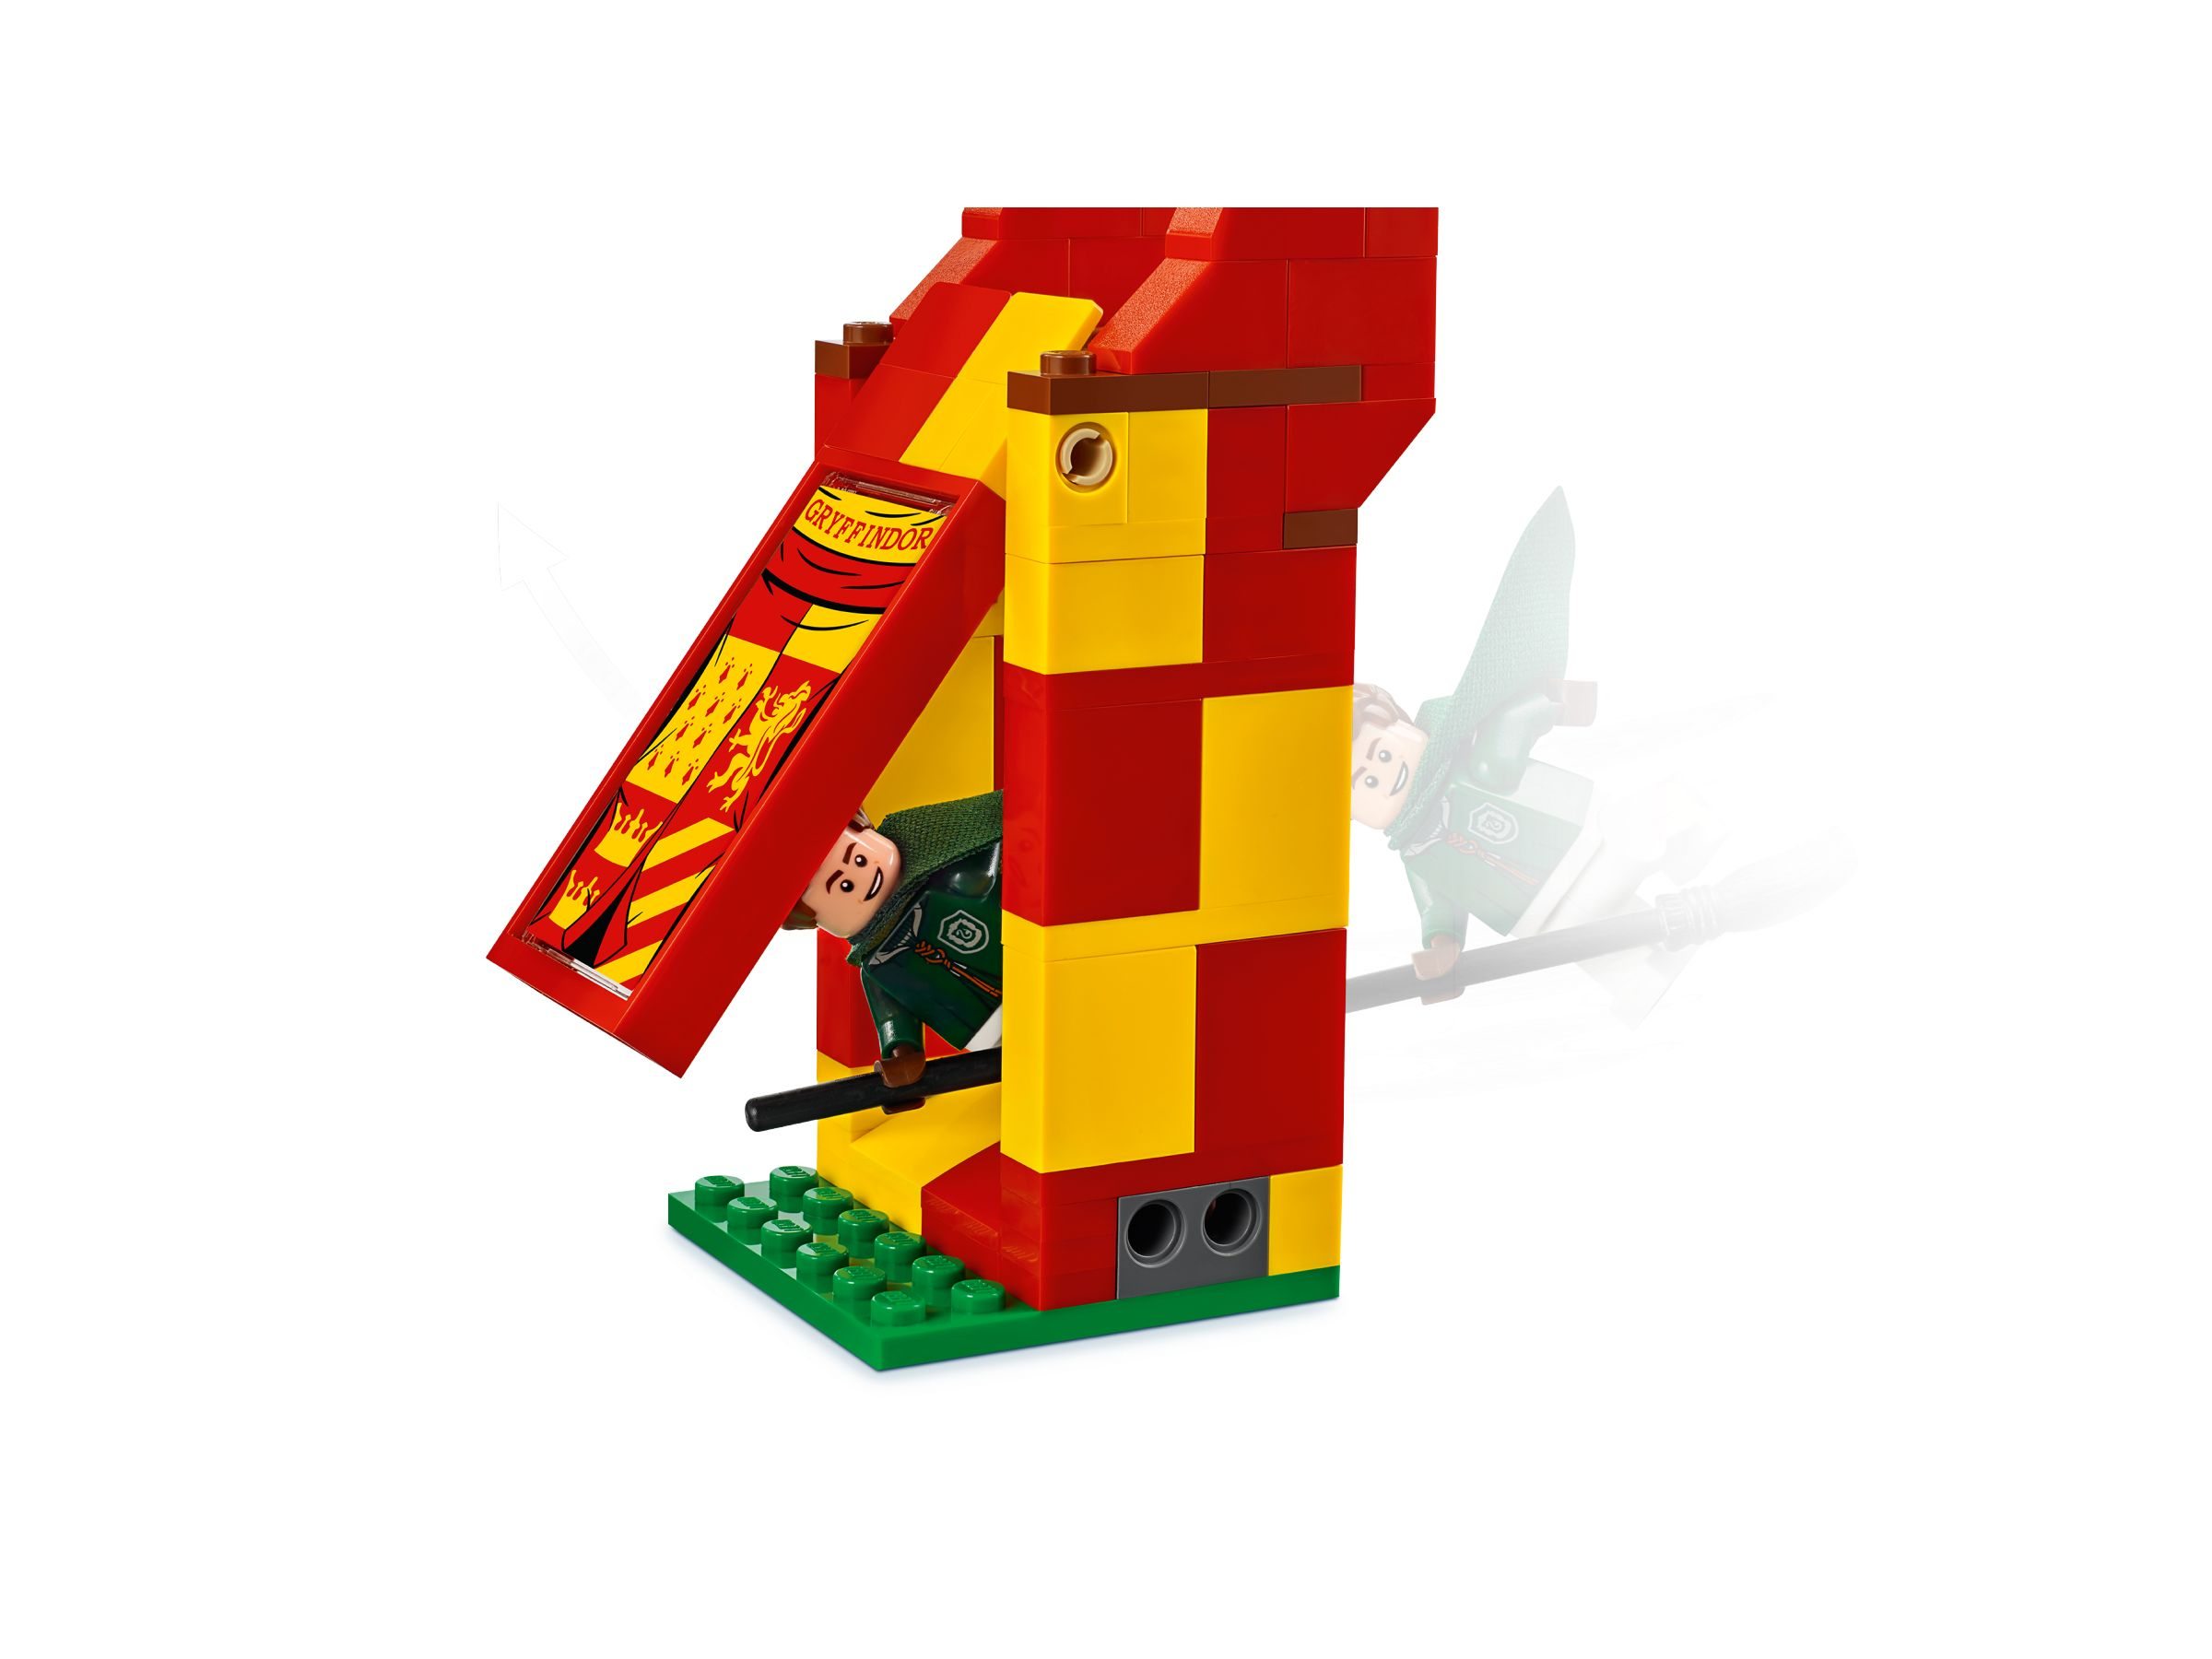 LEGO Harry Potter 75956 Quidditch™ Turnier LEGO_75956_alt6.jpg